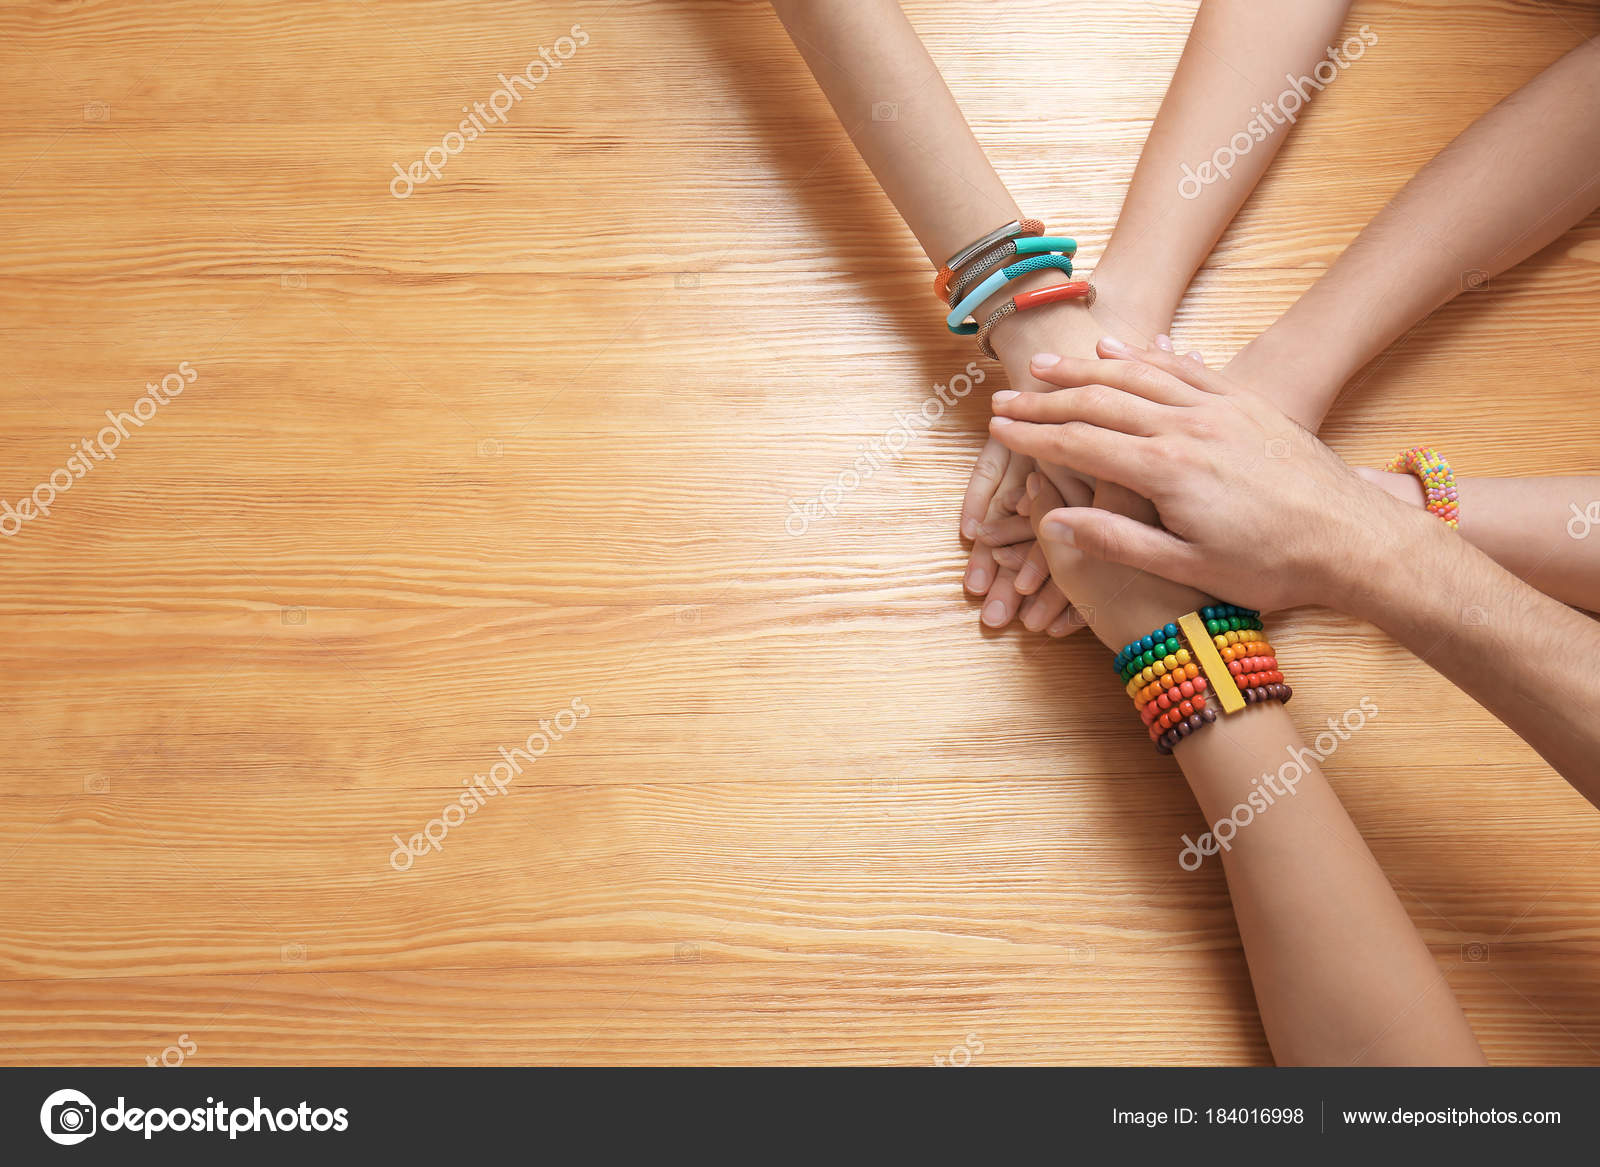 People Putting Hands Together Wooden Table Symbol Unity Stock